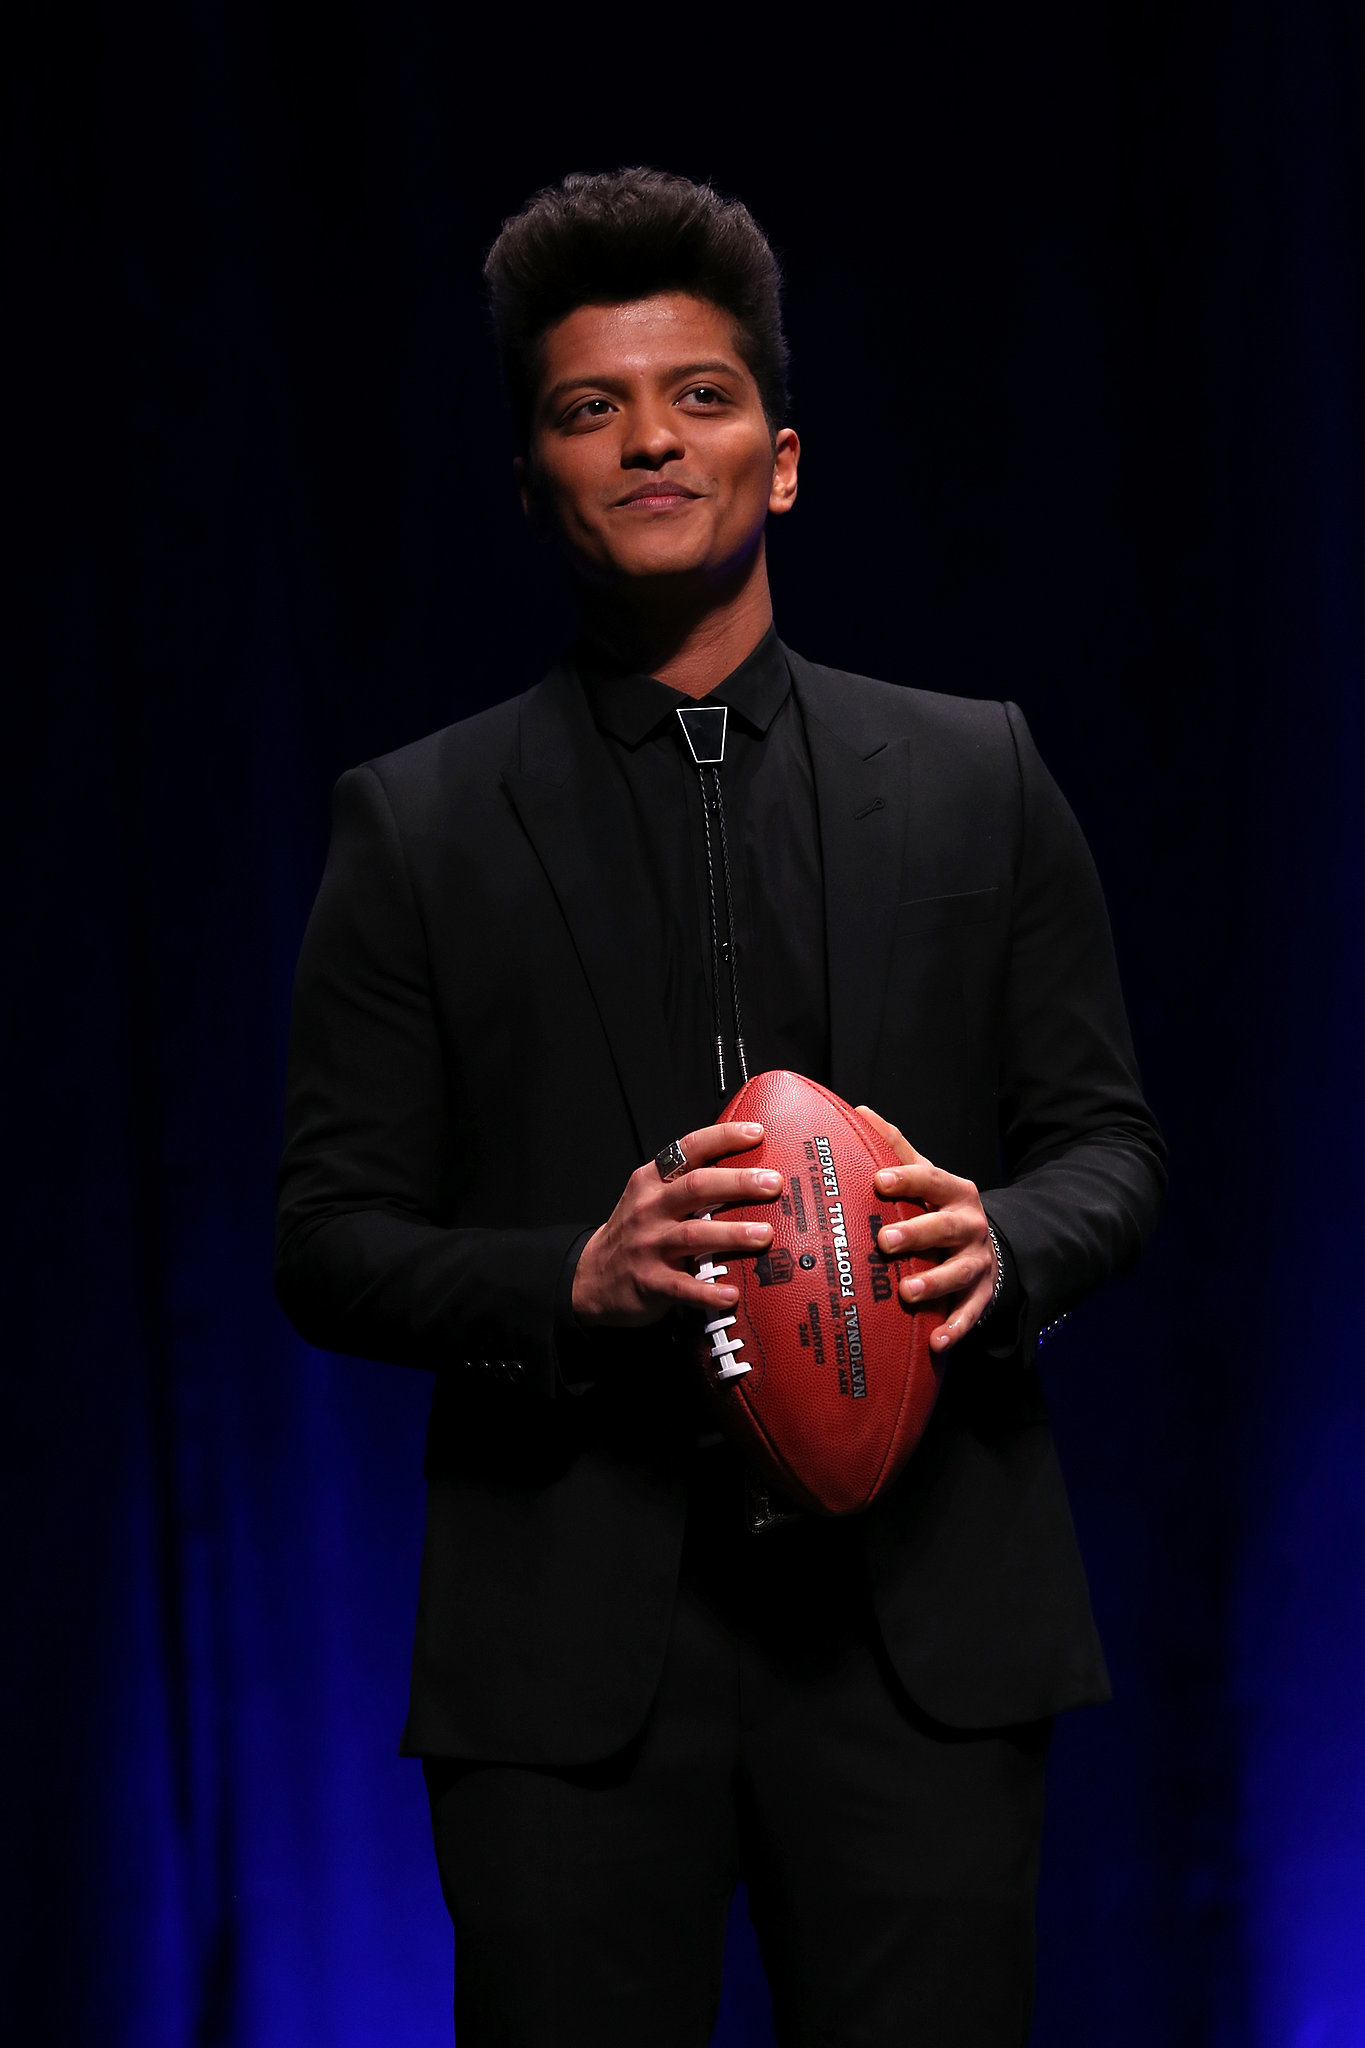 Bruno Mars did a press conference for his Super Bowl performance on Thursday.